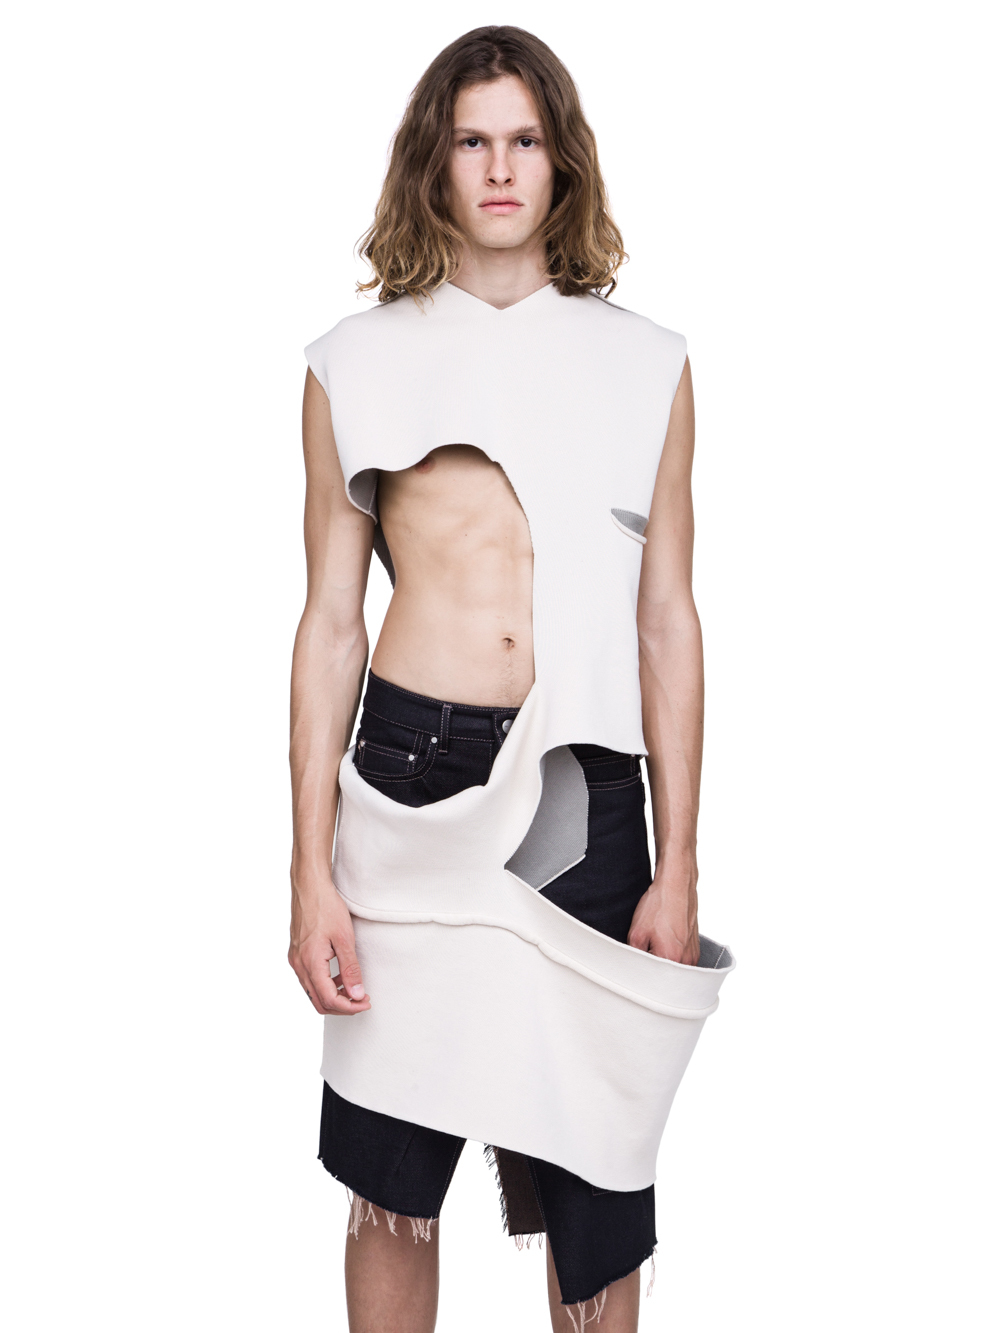 RICK OWENS SHRED TOP IN NATURAL AND PEARL BEIGE SCULPTURE KNIT